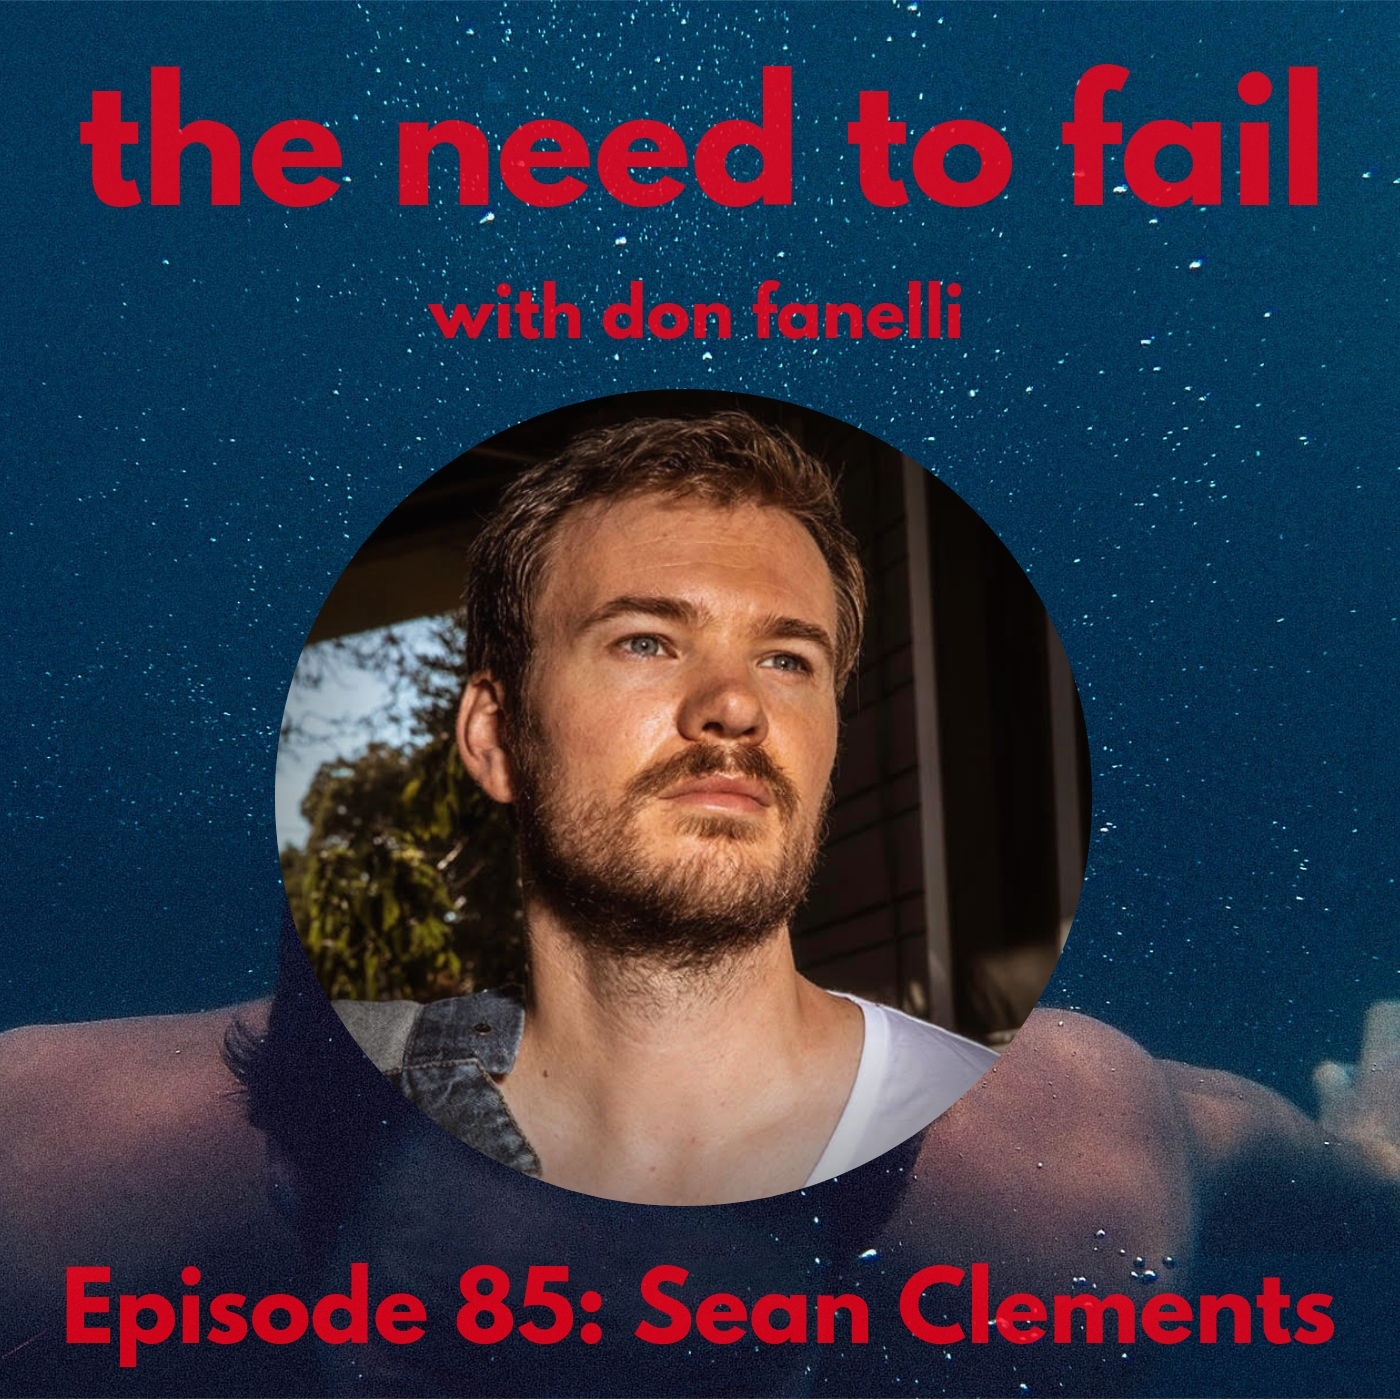 Episode 85: Sean Clements